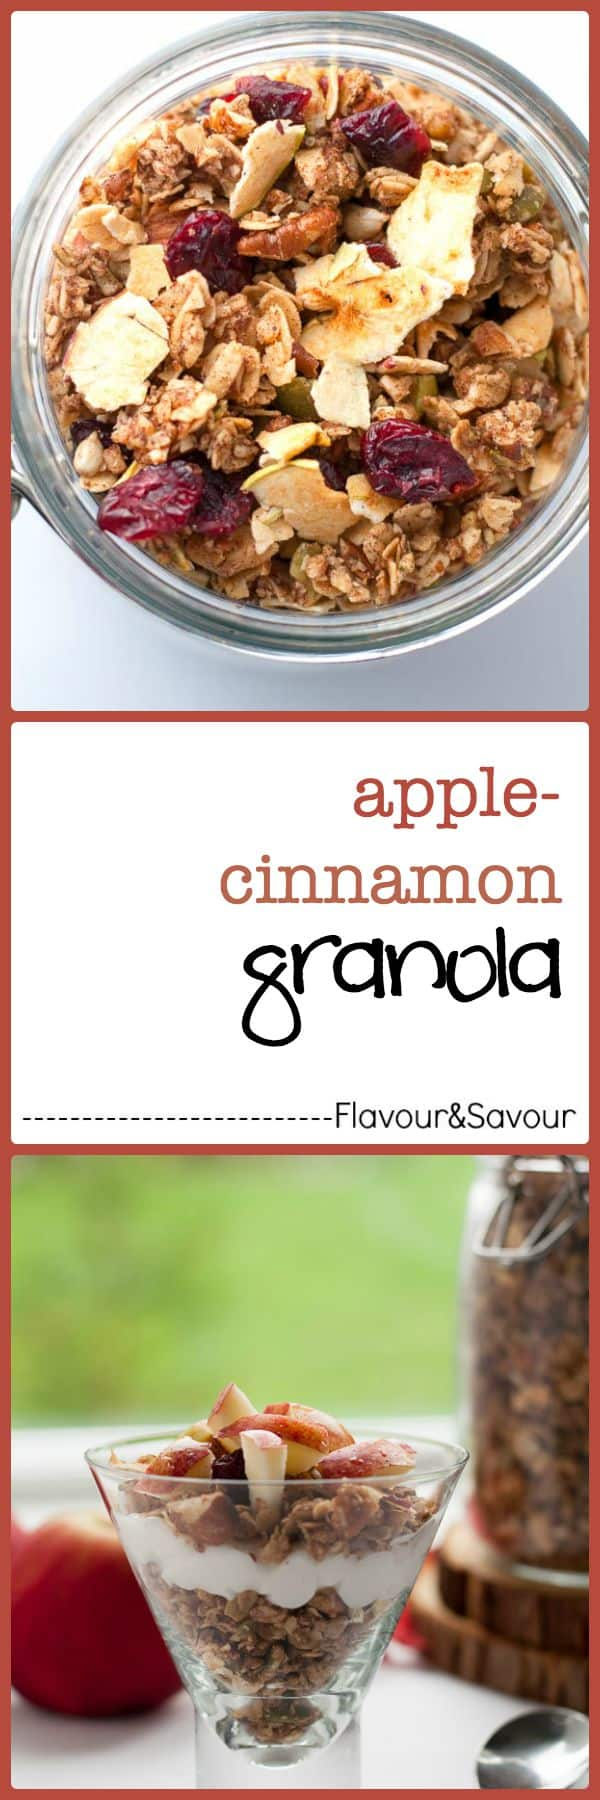 How to Make Apple Cinnamon Granola. Learn to make healthy apple cinnamon granola, or any granola, without a recipe by following this easy guide. It's full of healthy wholesome ingredients. |www.flavourandsavour.com